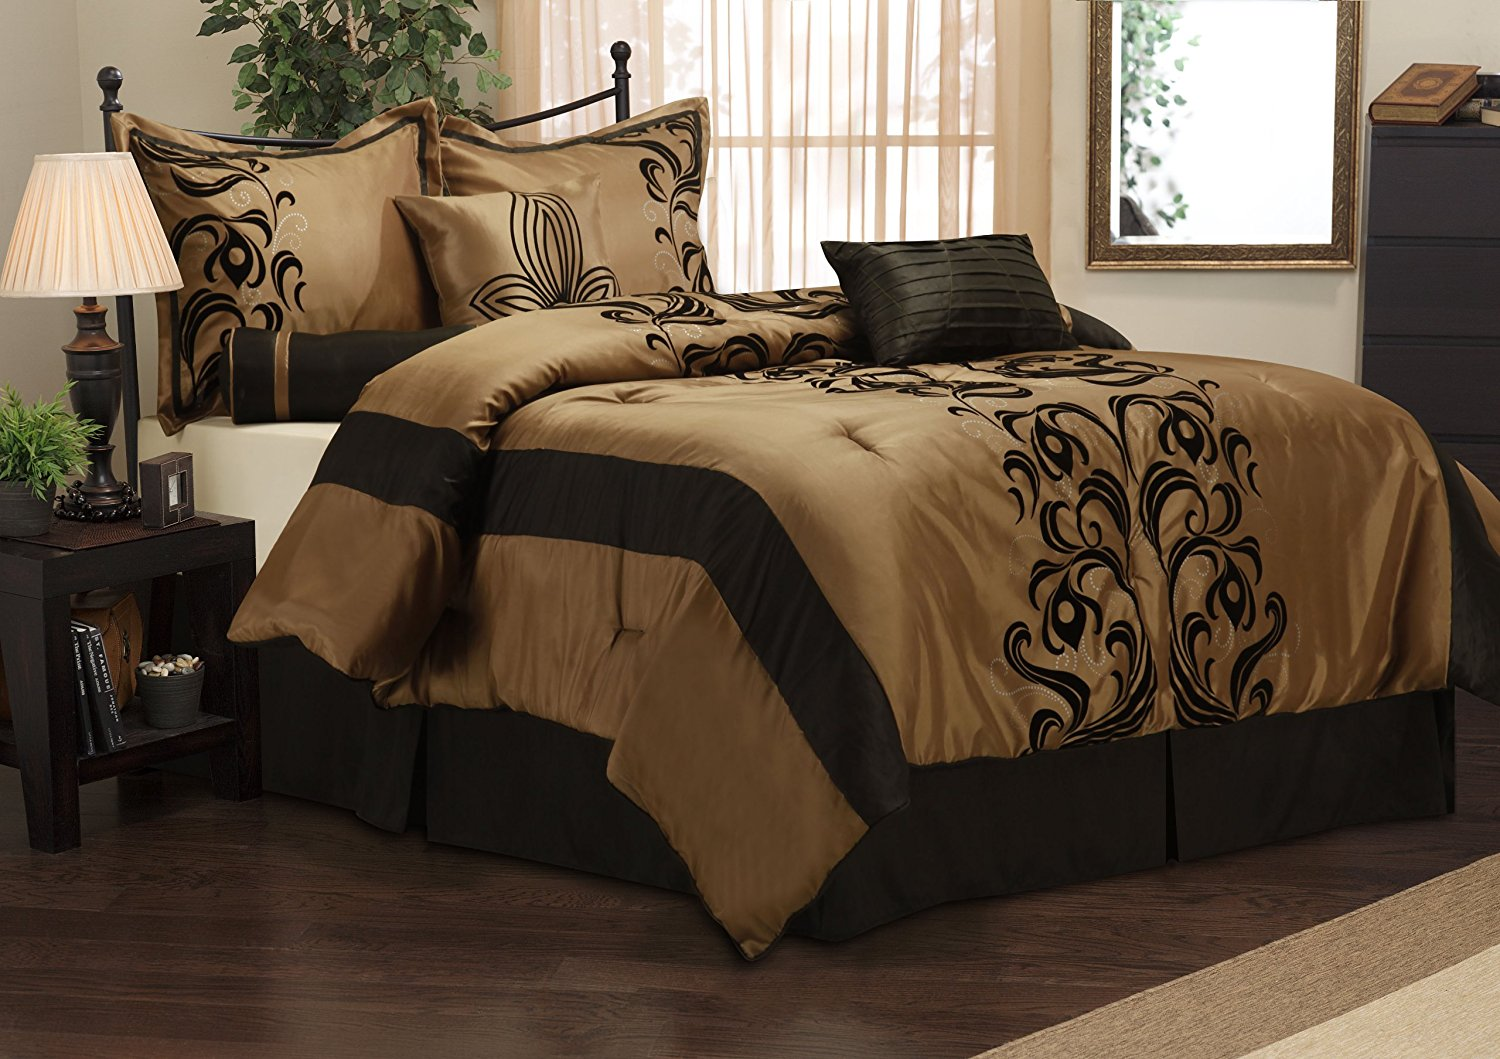 Luxury Comforter Sets | Mens Bedding Comforters | Luxury Twin Comforter Sets